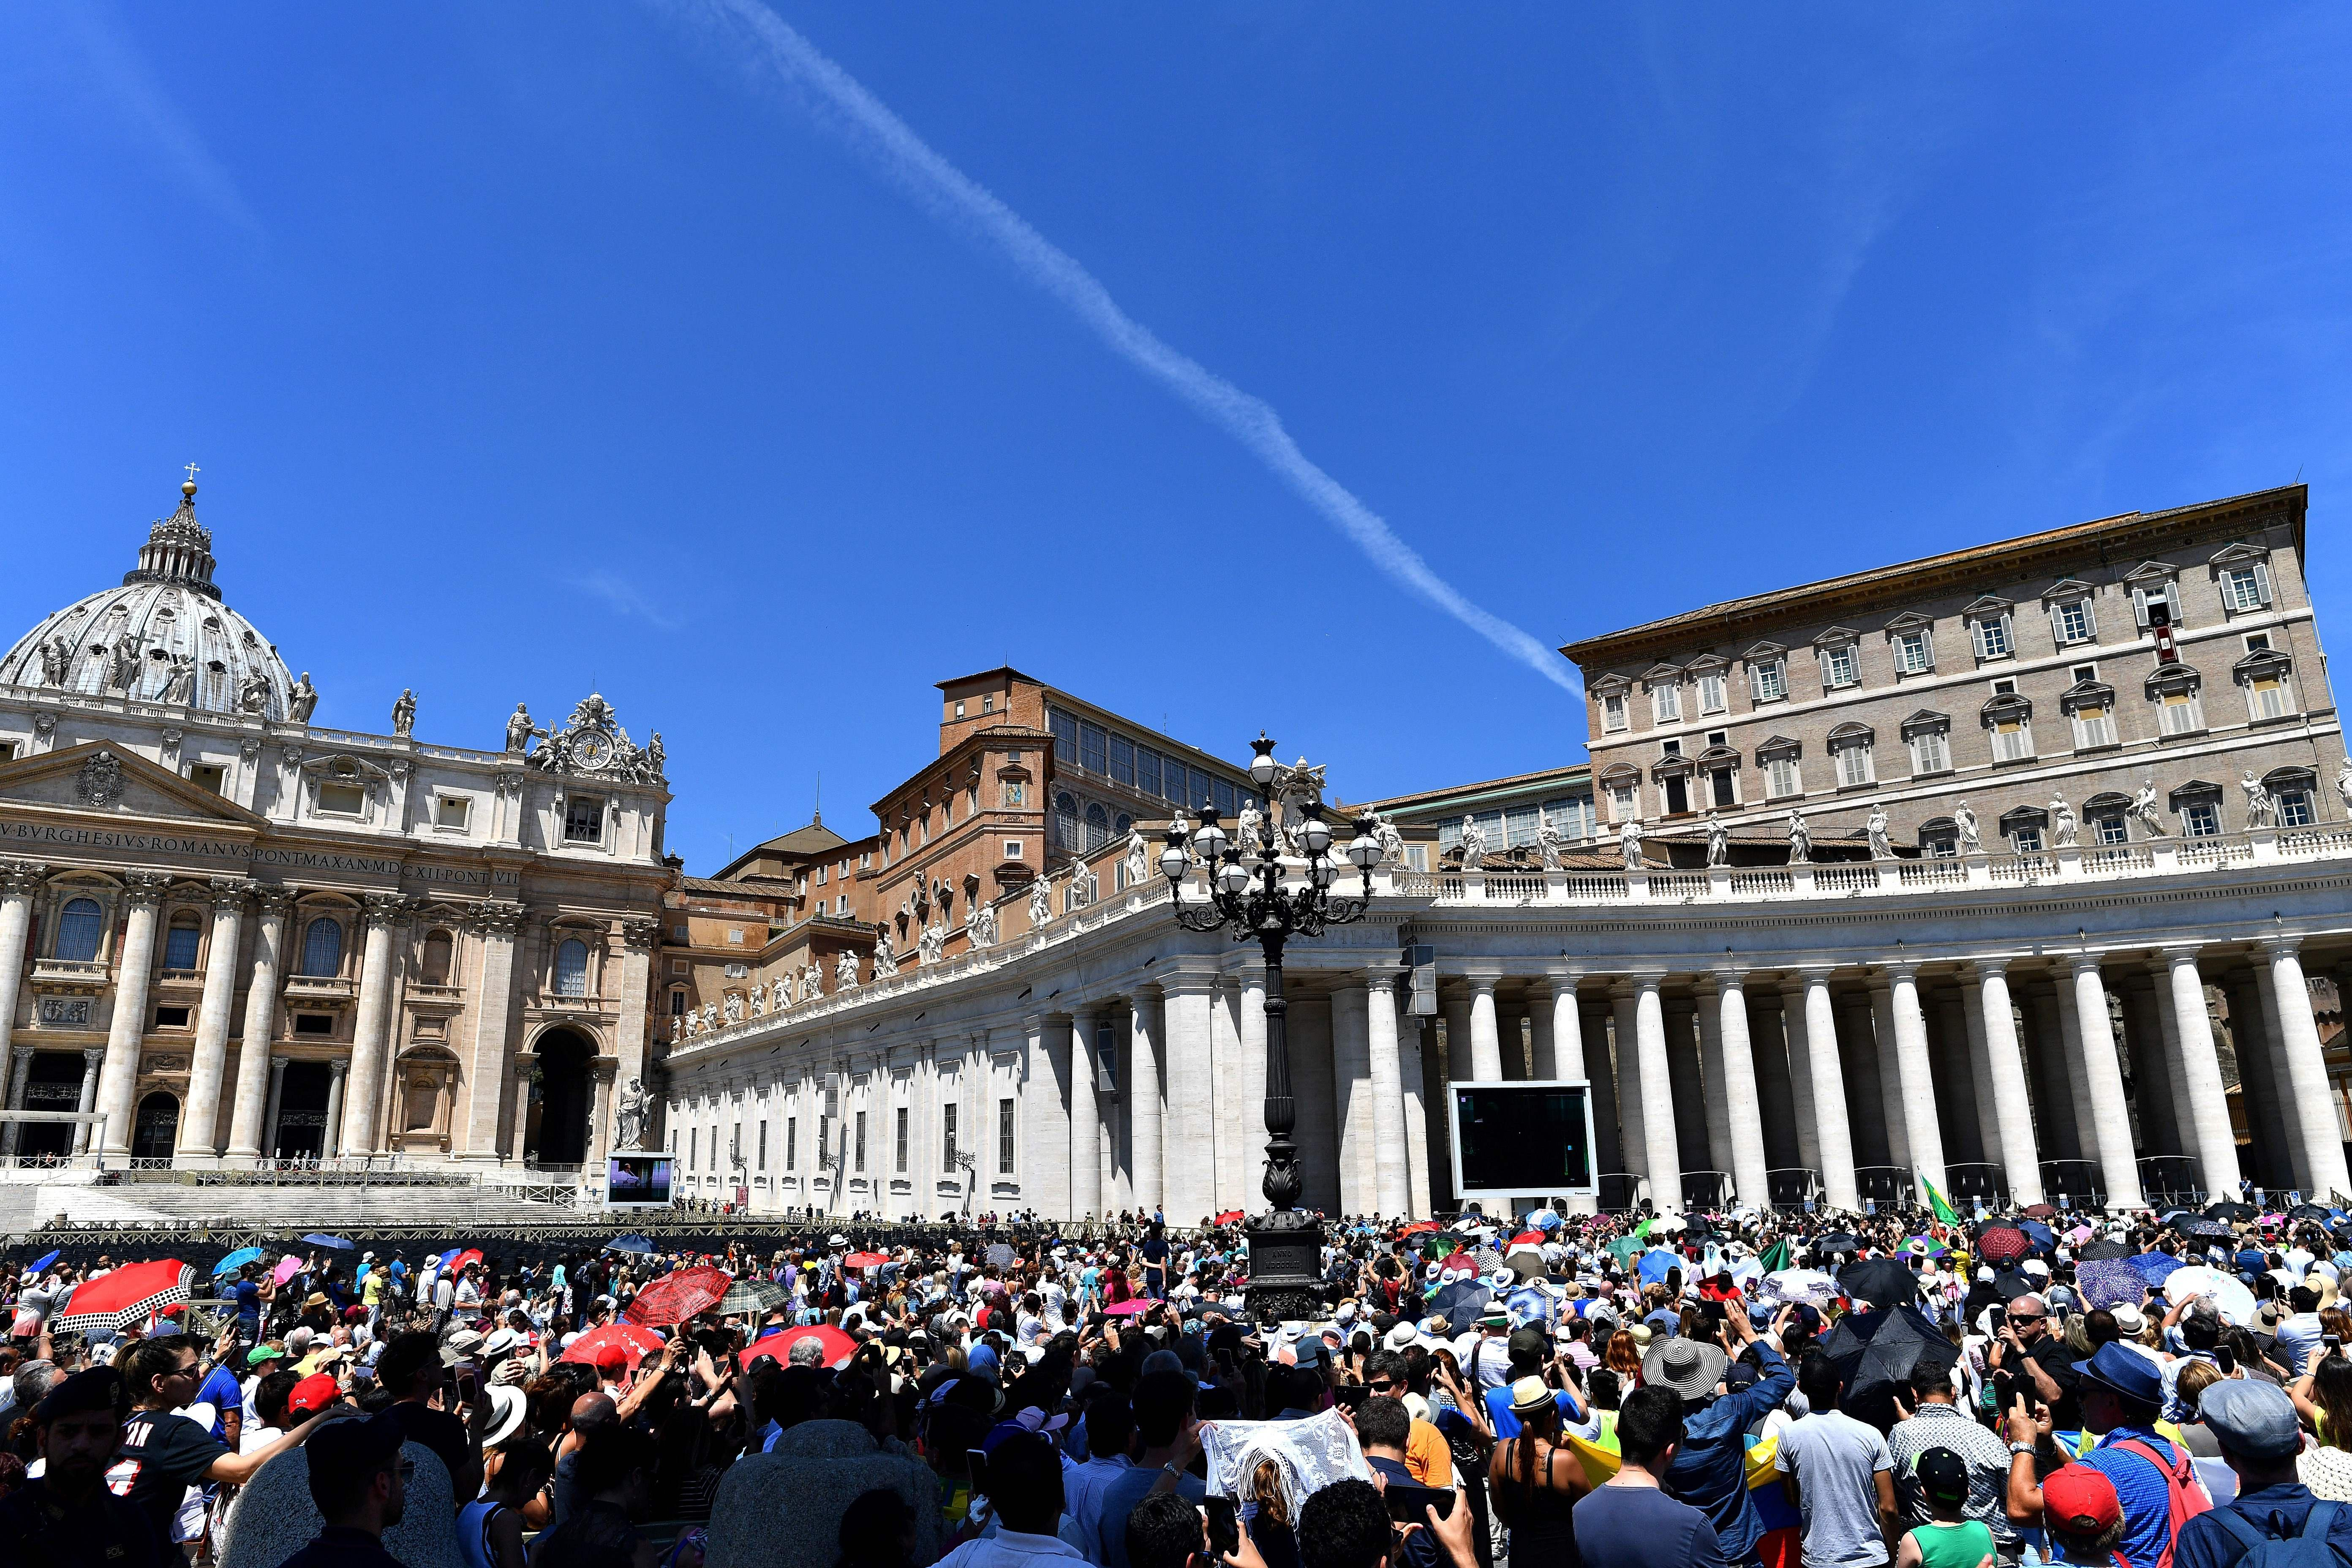 Pope Francis addresses the crowd from the window of the apostolic palace overlooking St Peter's square during his Angelus prayer on June 17, 2018 at the Vatican.